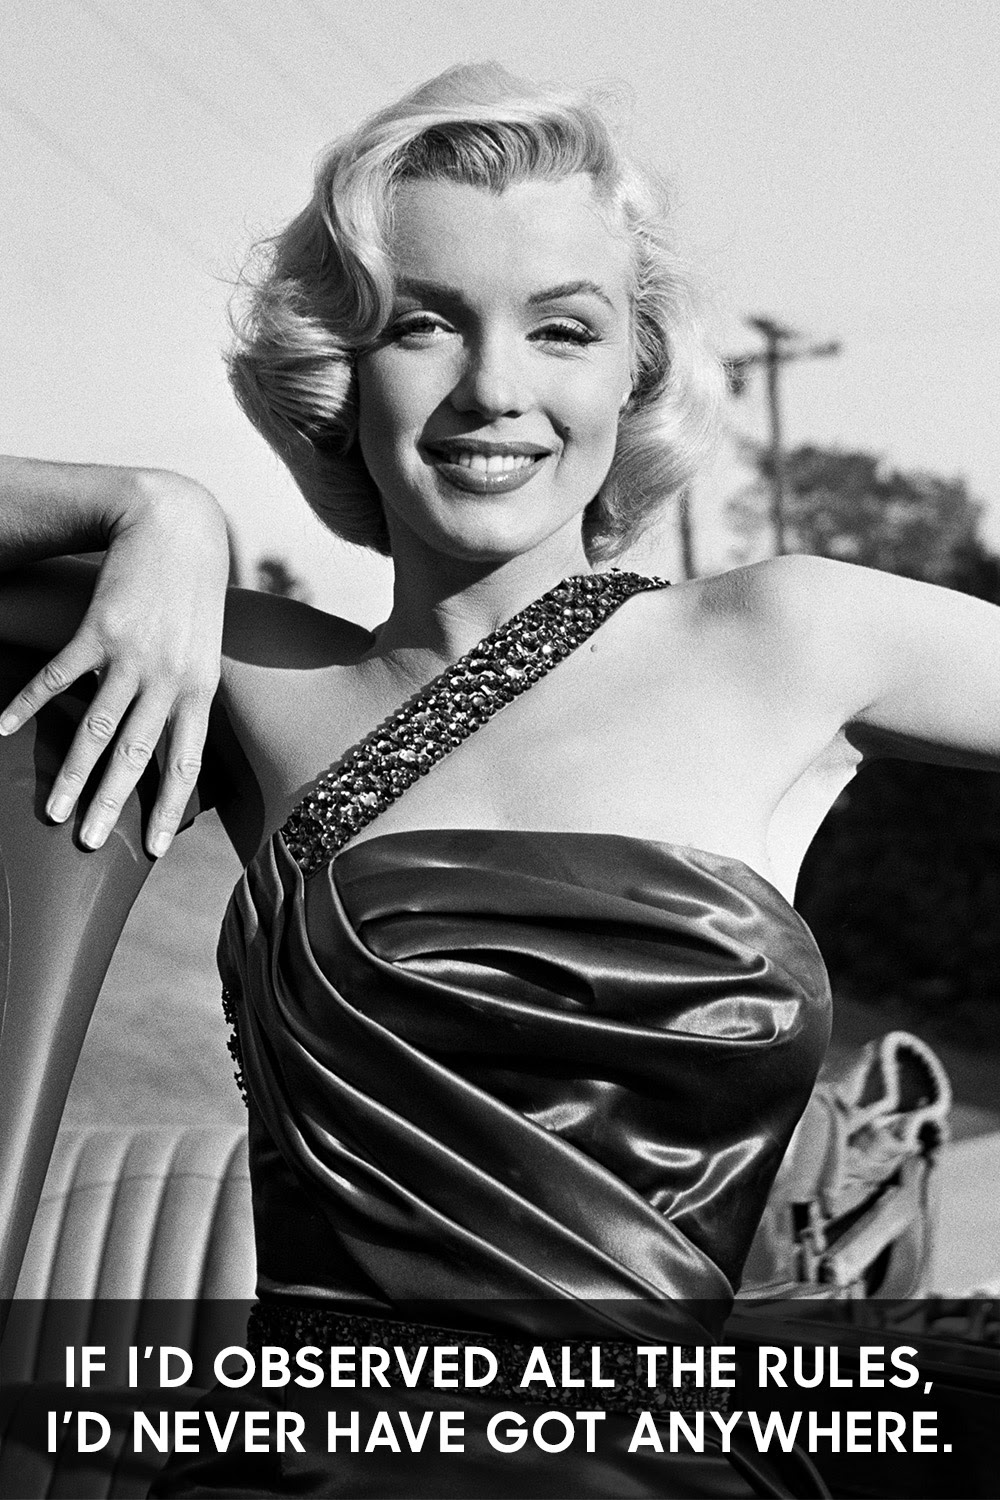 20 Best Marilyn Monroe Quotes on Love and Life Marilyn Monroe Quotes and s